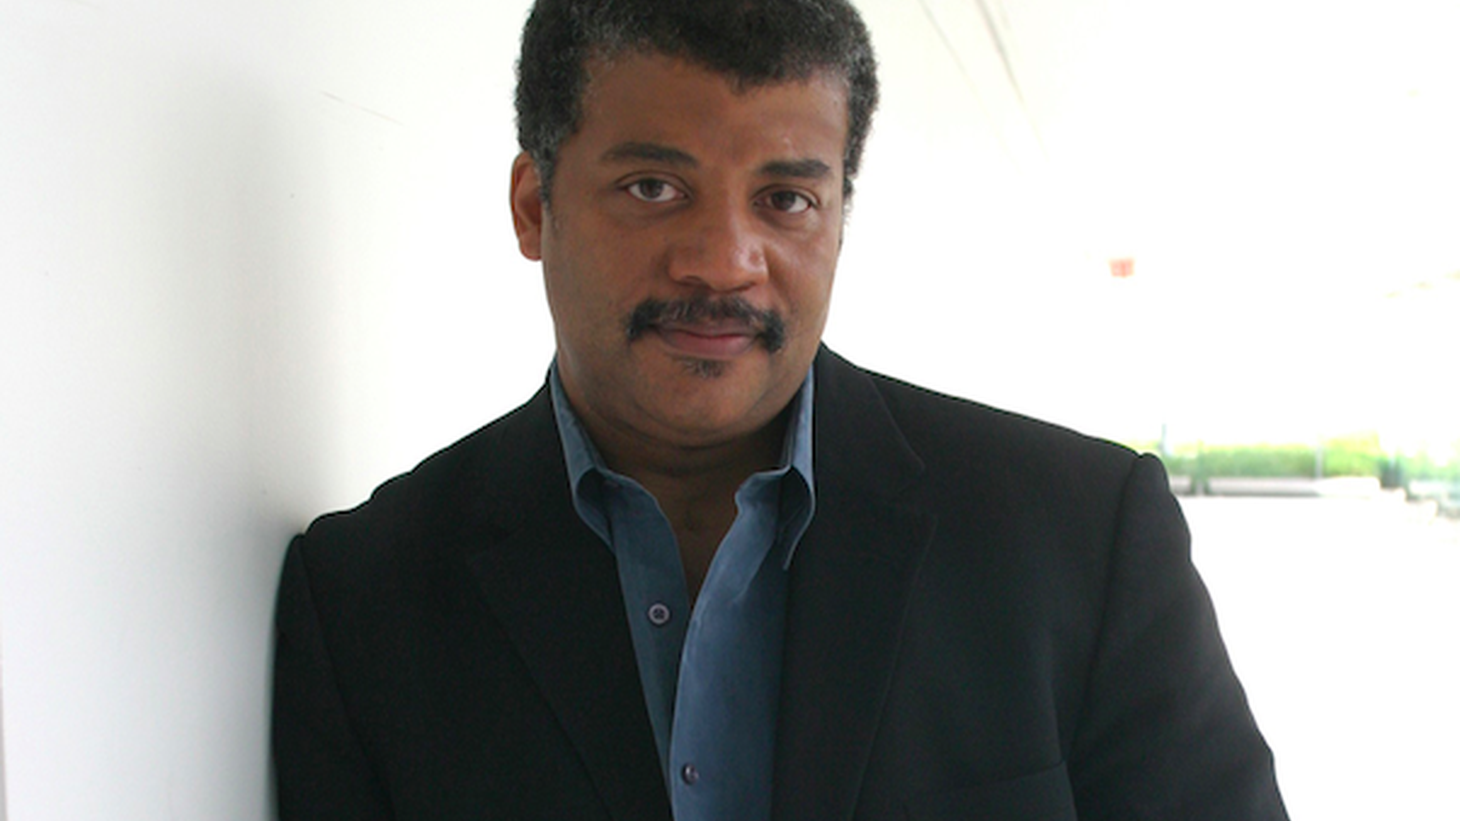 """Neil deGrasse Tyson says astrophysicists are mostly peace-loving scientists, but have always been complicit in warfare. He also explains what war in space could look like, but why it's unlikely to happen. His new book is titled """"Accessory to War."""""""